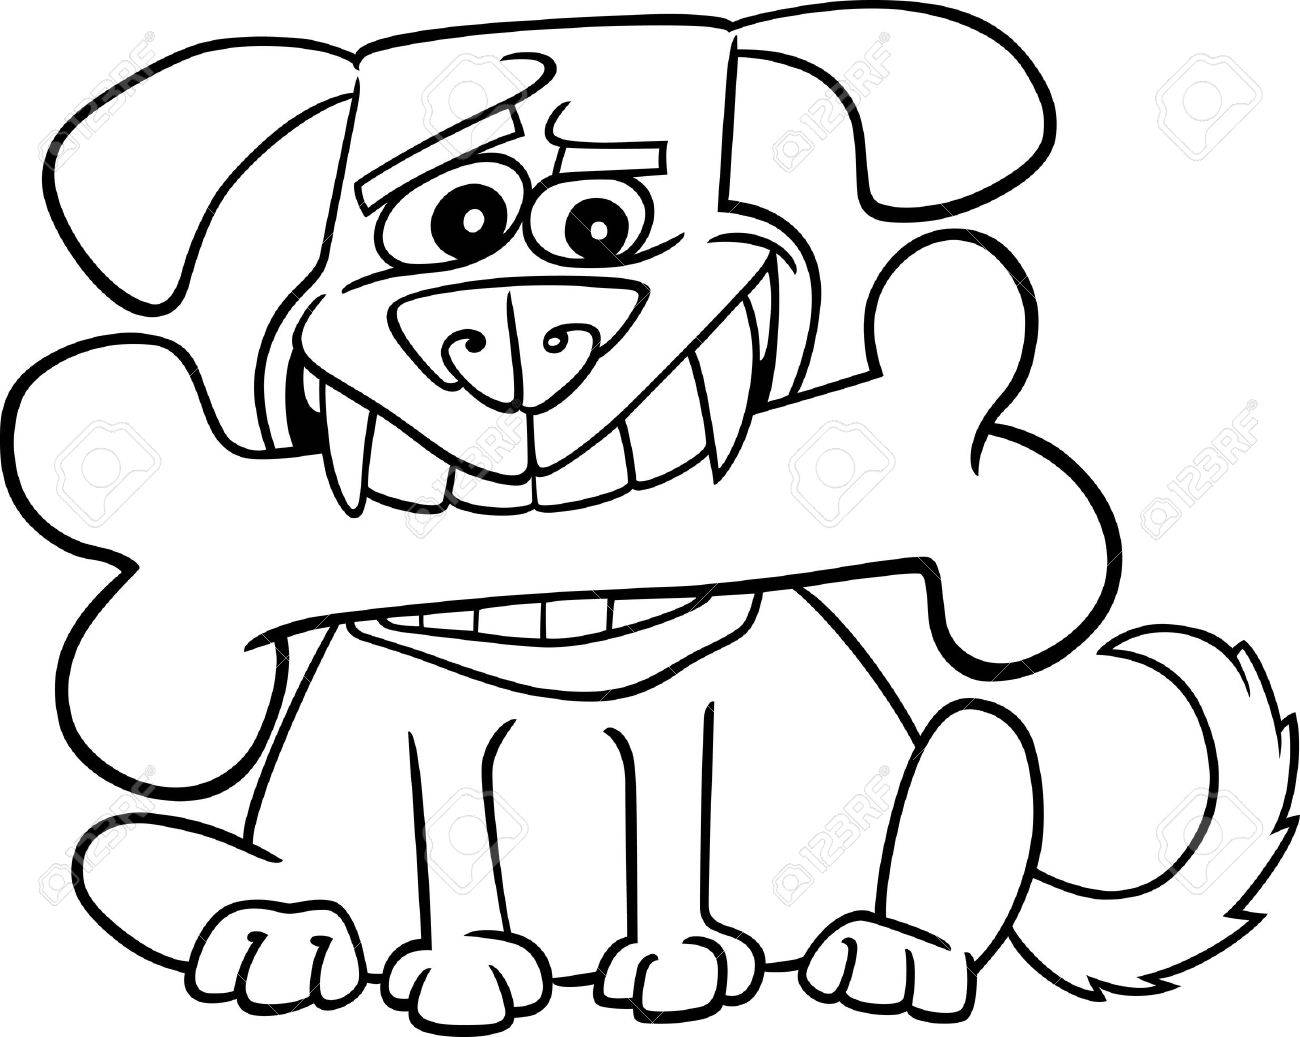 Cartoon Illustration Of Dog With Big Bone For Coloring Book Royalty Free Cliparts Vectors And Stock Illustration Image 14295346